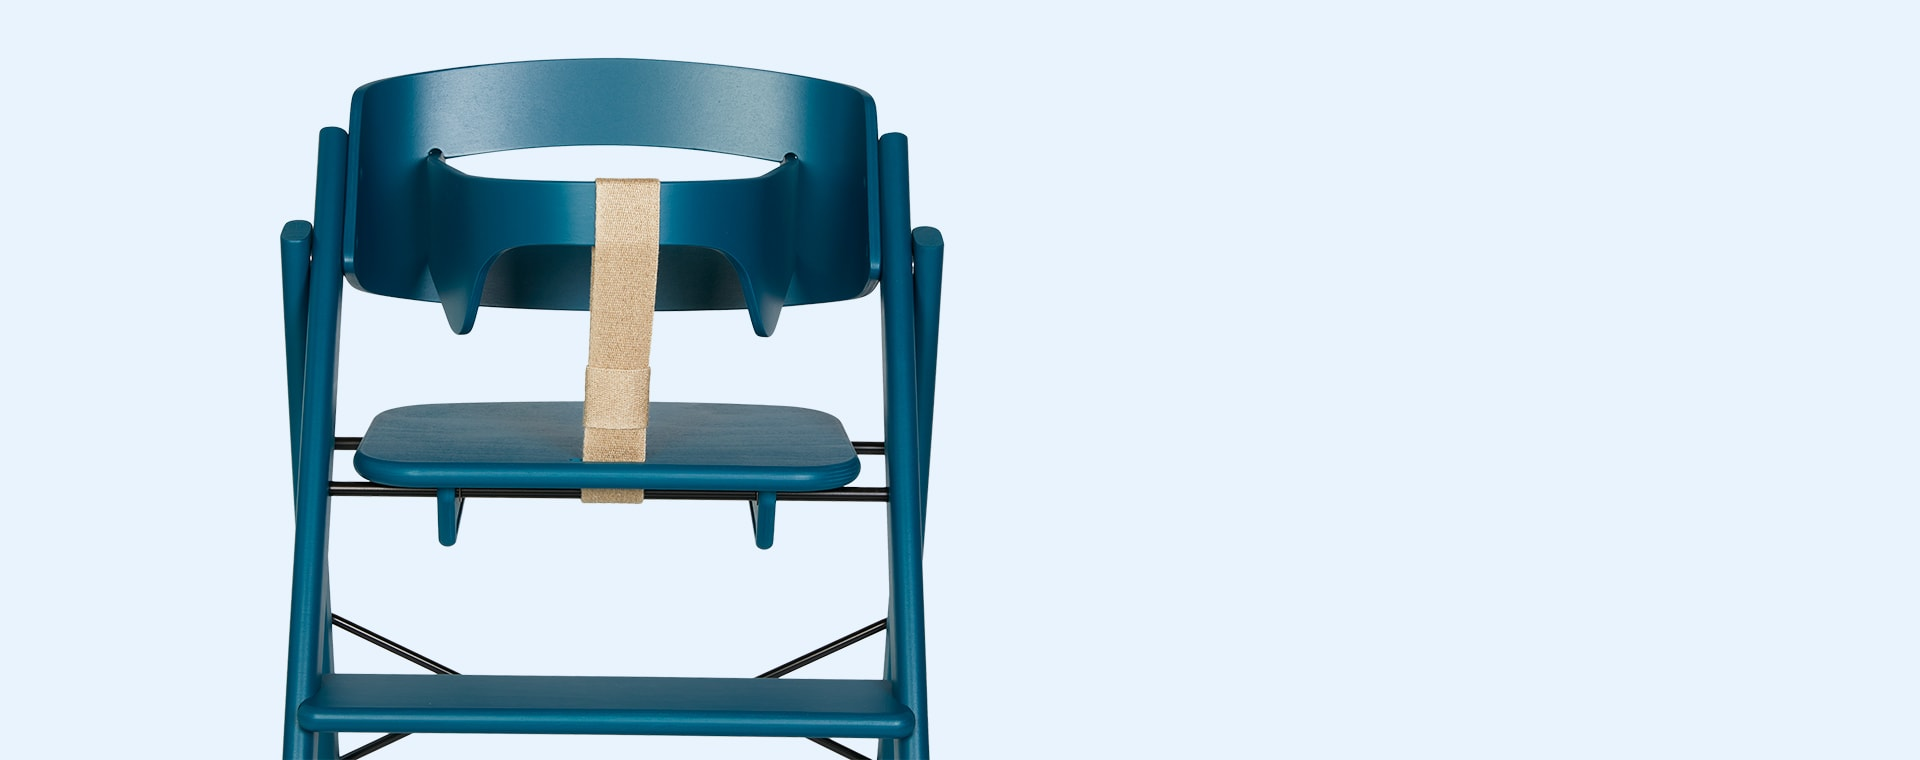 Petrol KAOS Foldable Highchair With Safety Rail